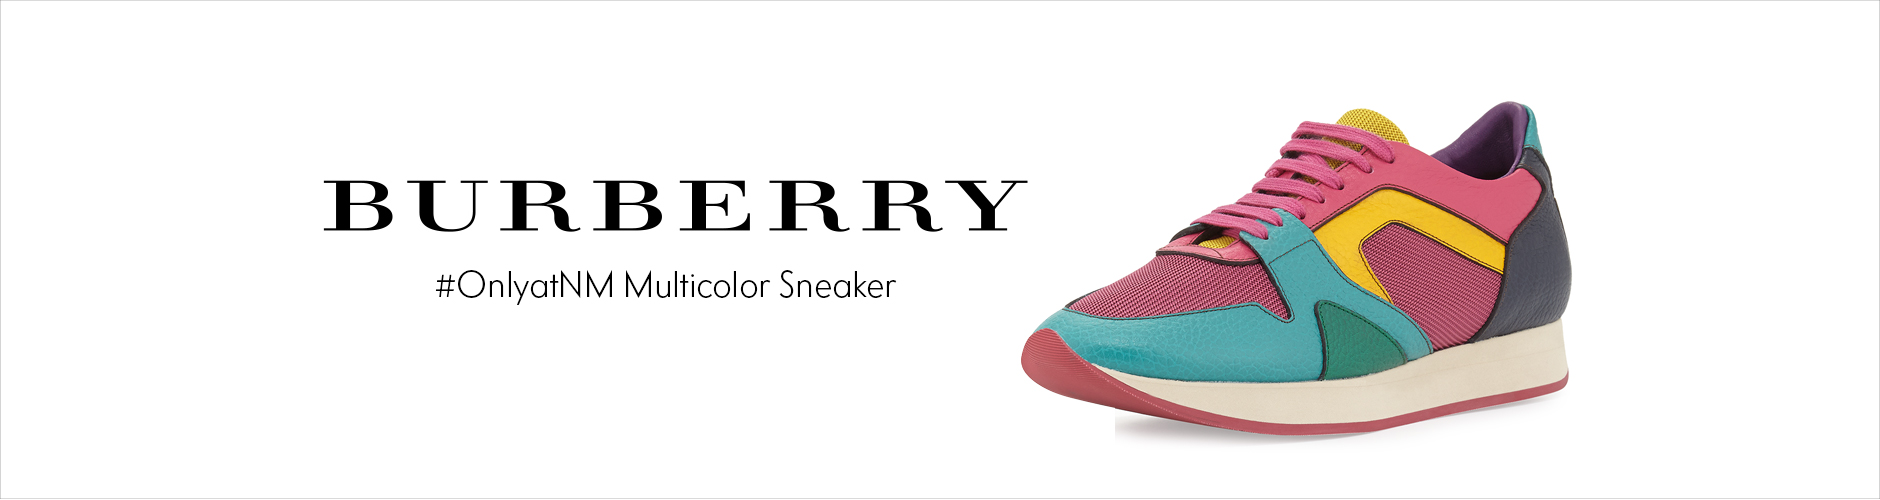 Burberry: NM Exclusive Multicolor Sneaker